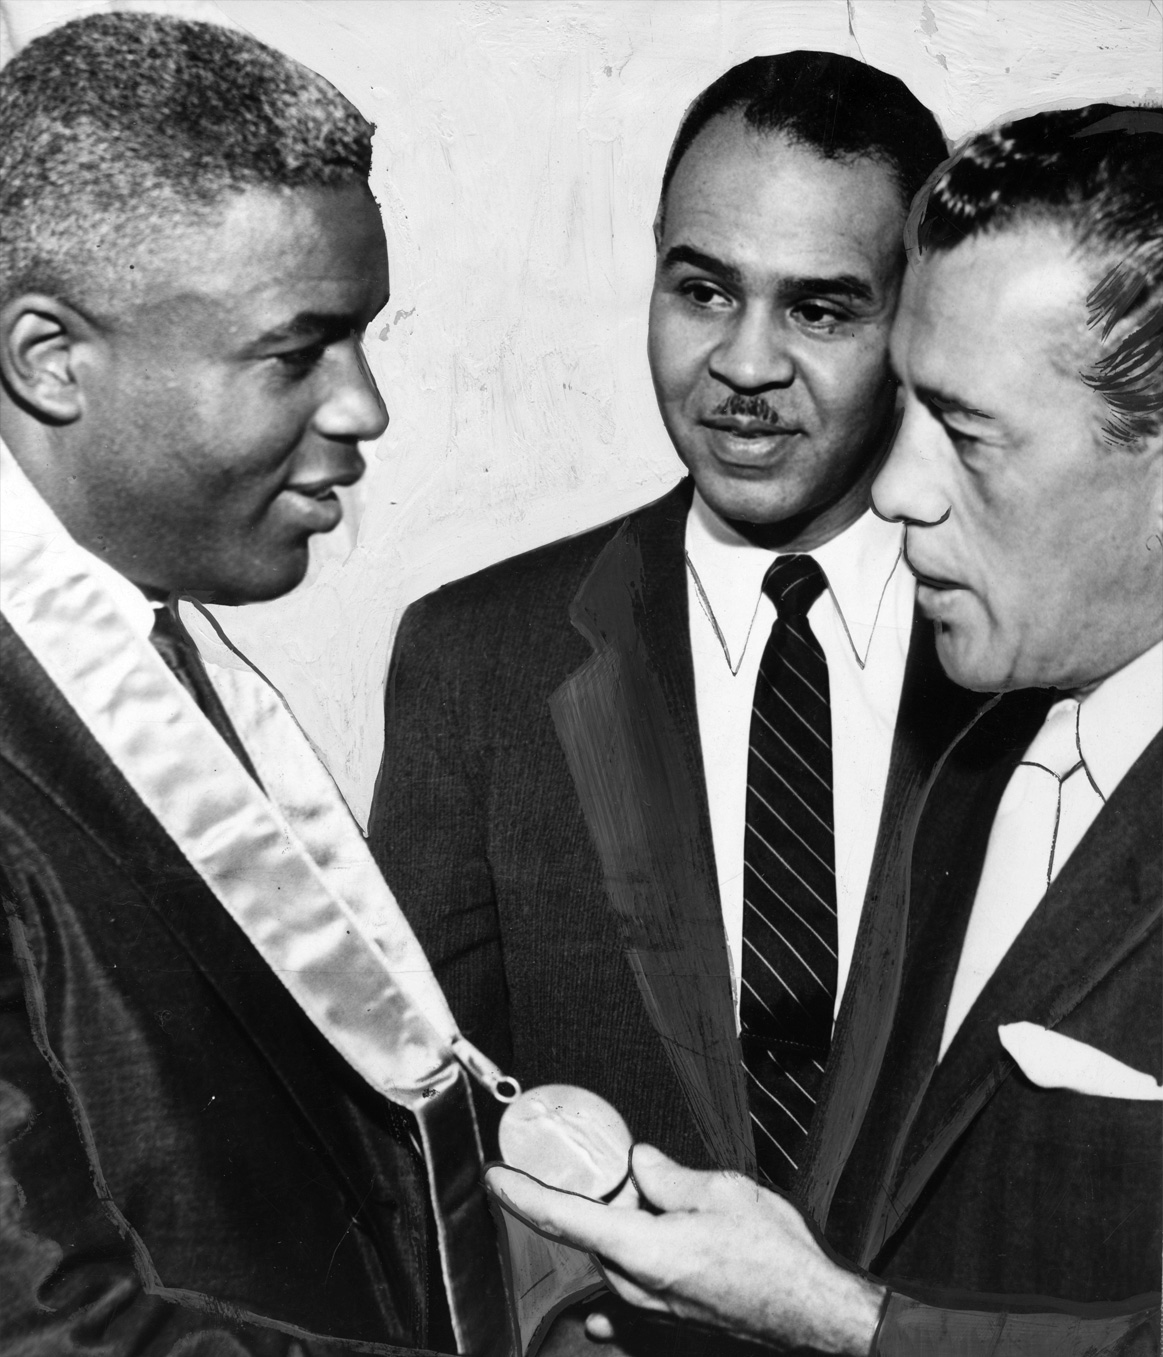 Jackie Robinson receives the NAACP Spingarn Medal from Roy Wilkins (center) and Thurgood Marshall (right), 1956. The medal will be among the artifacts on display in the museum.  Getty Images